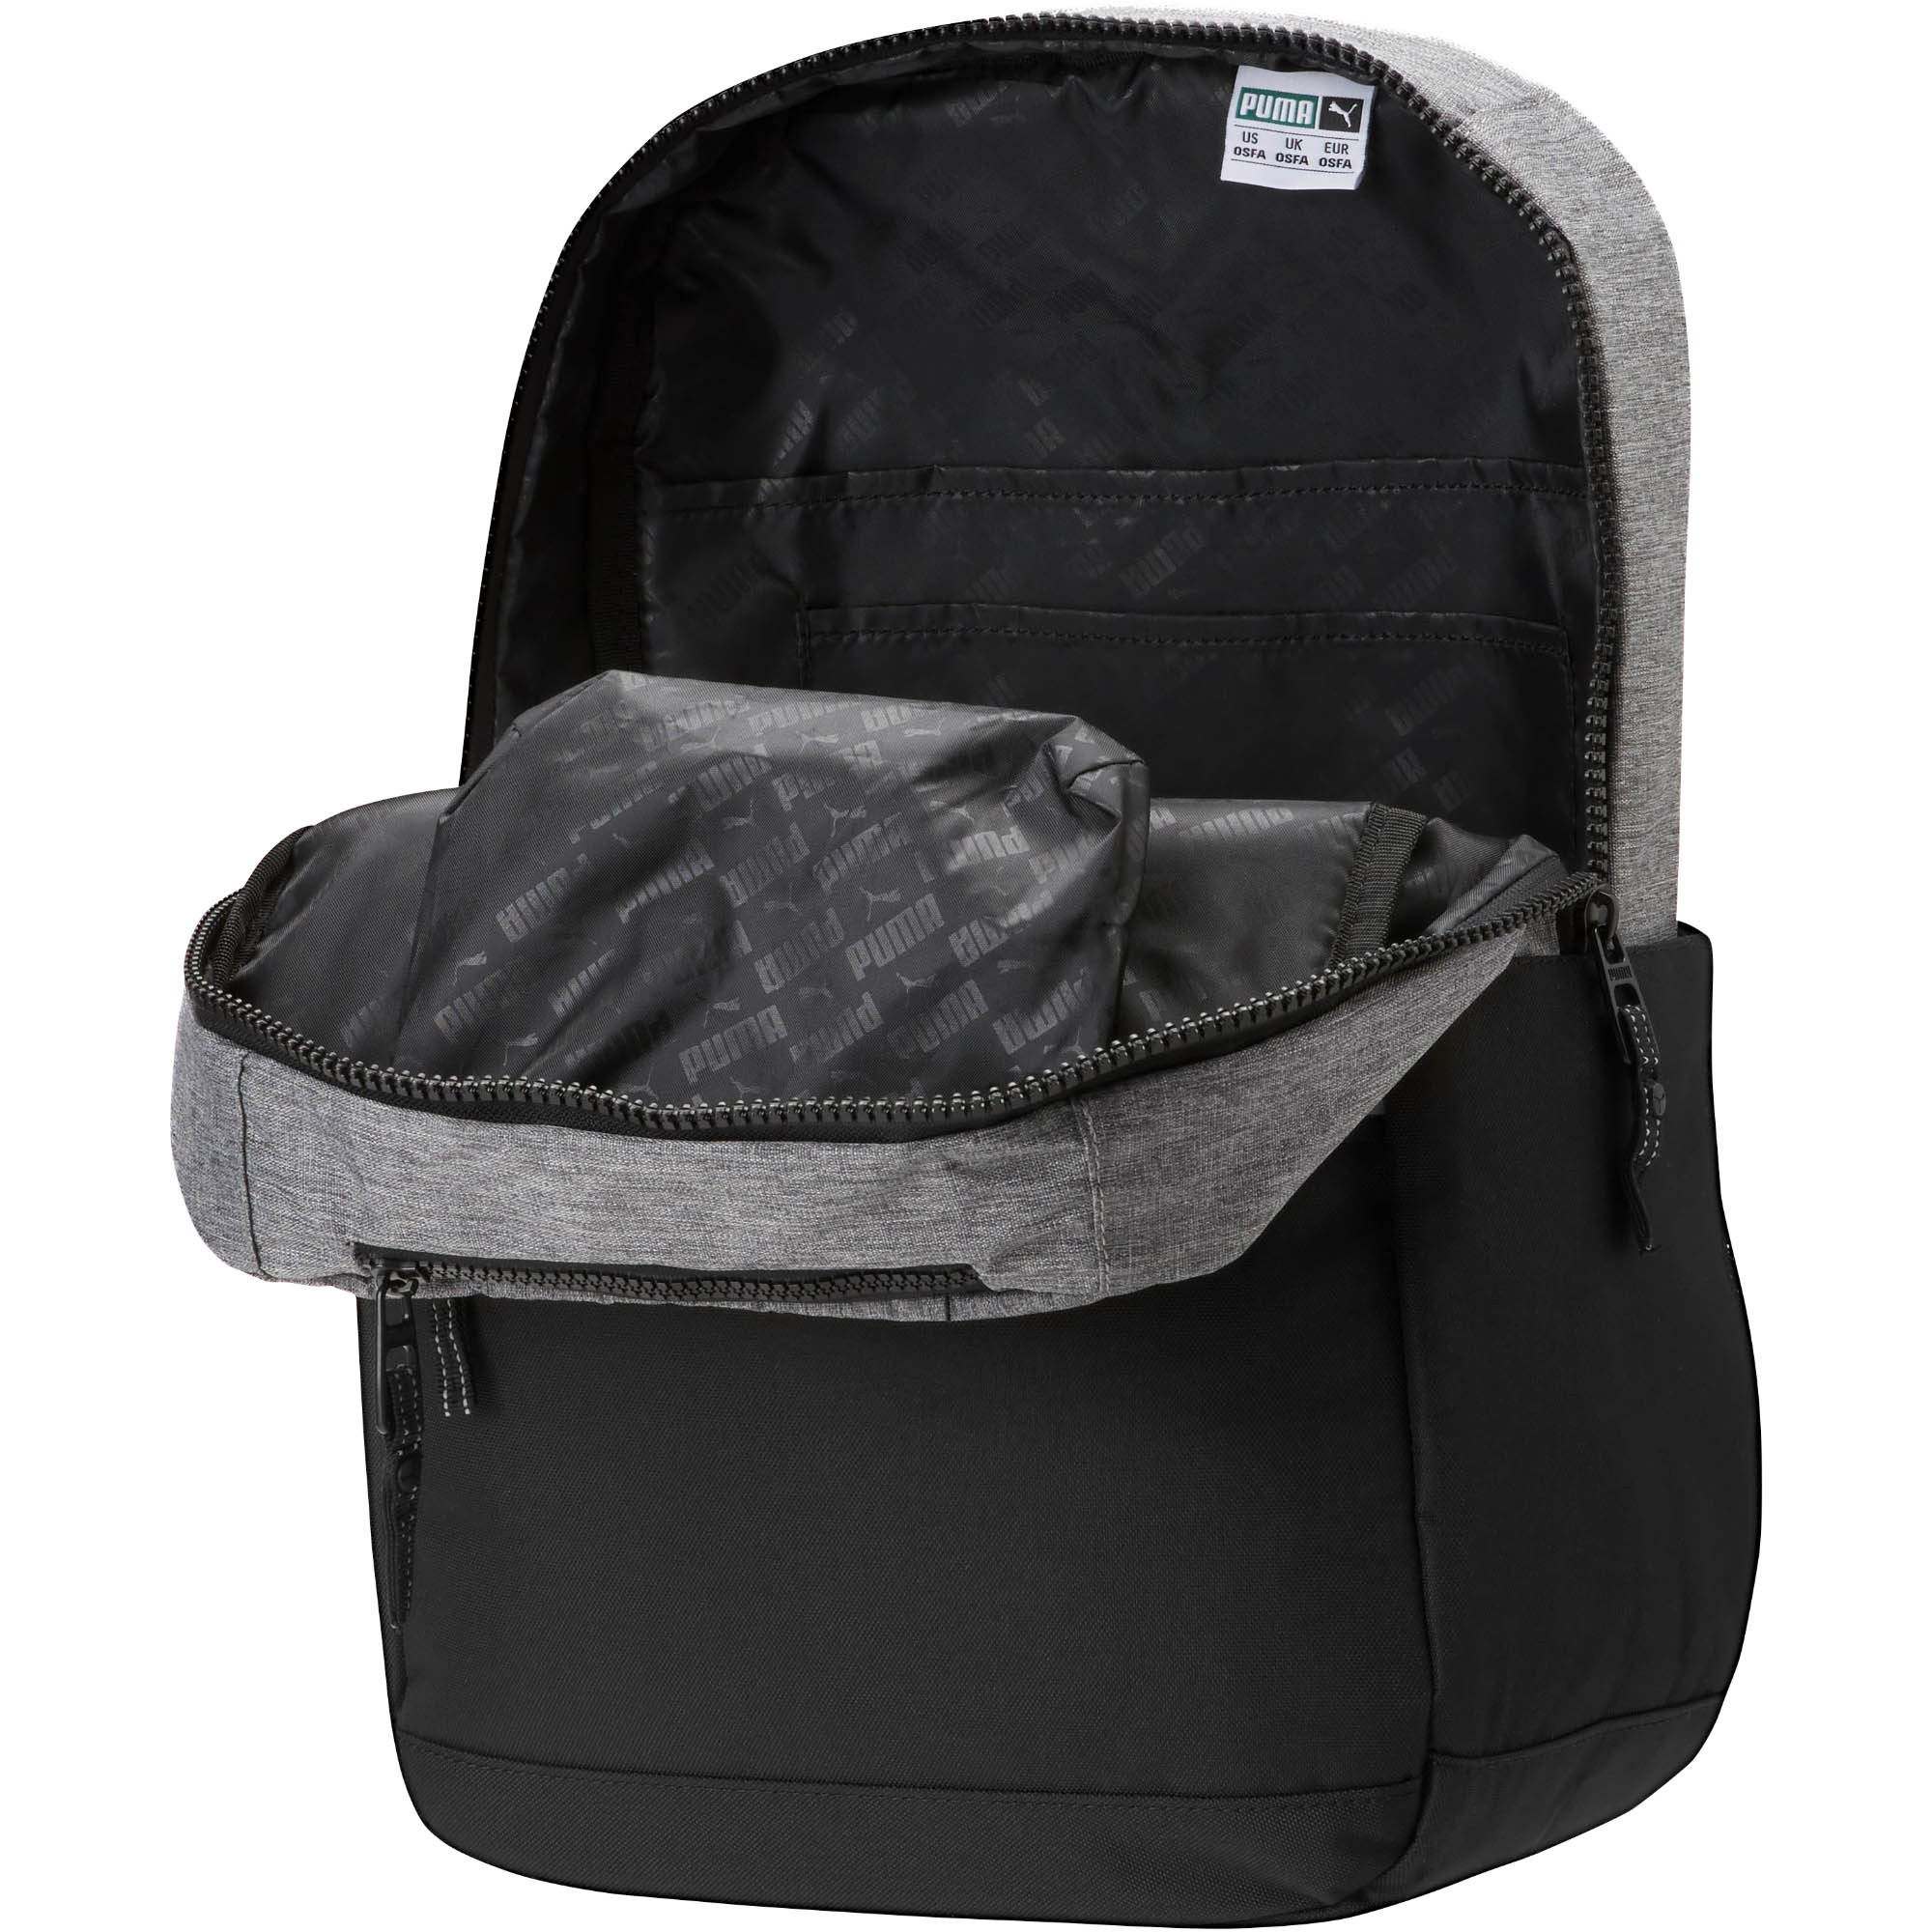 PUMA-Puma-Speedway-Backpack-Men-Backpack thumbnail 3